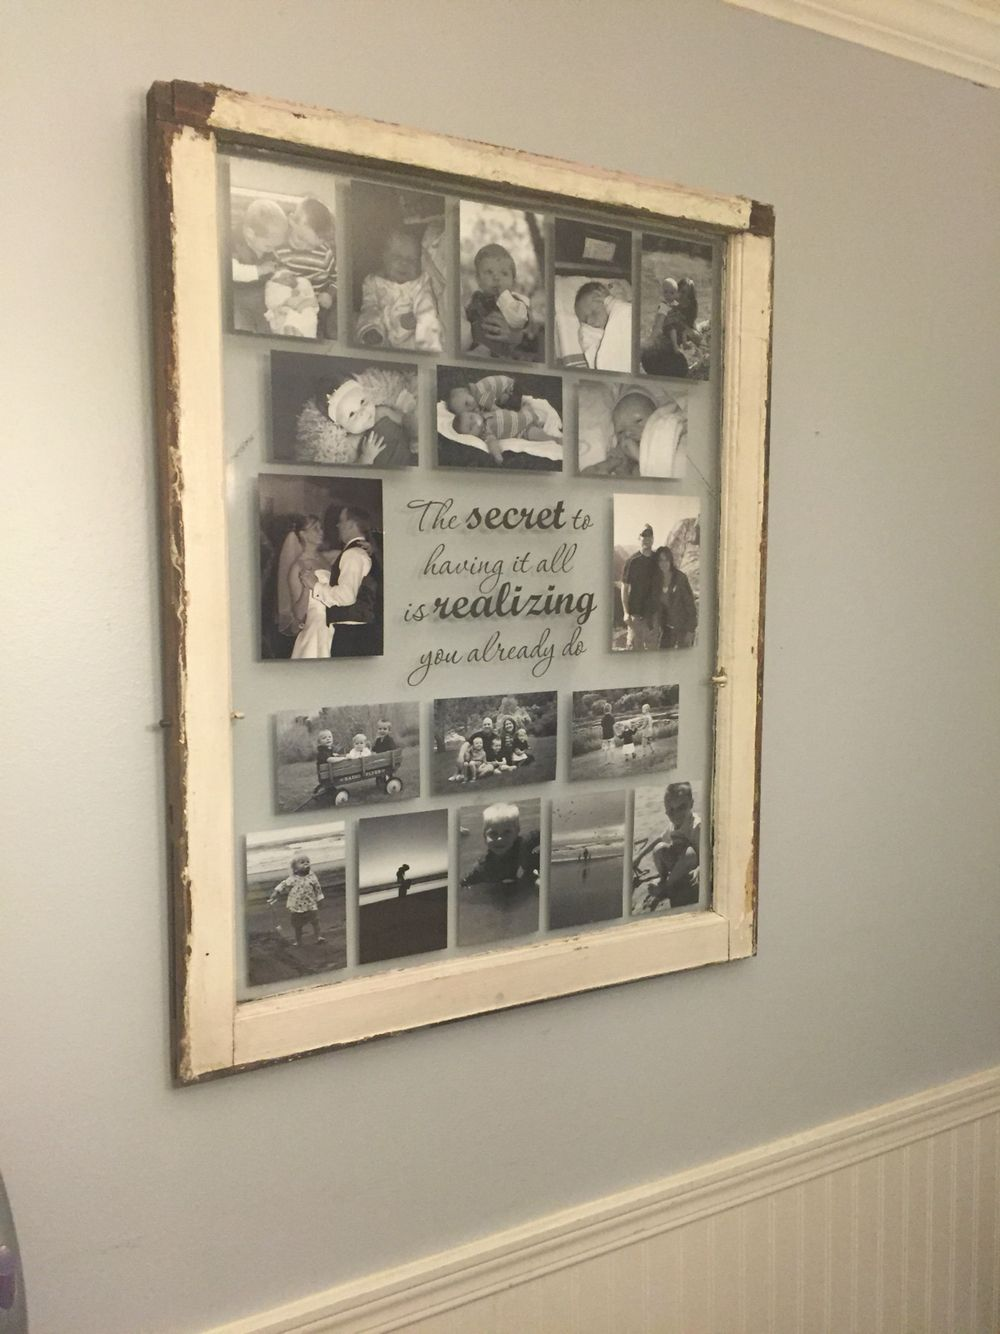 Old Single Pane Window Frame Turned Into A Collage Photo Frame With Quote Window Crafts Old Window Projects Old Window Crafts